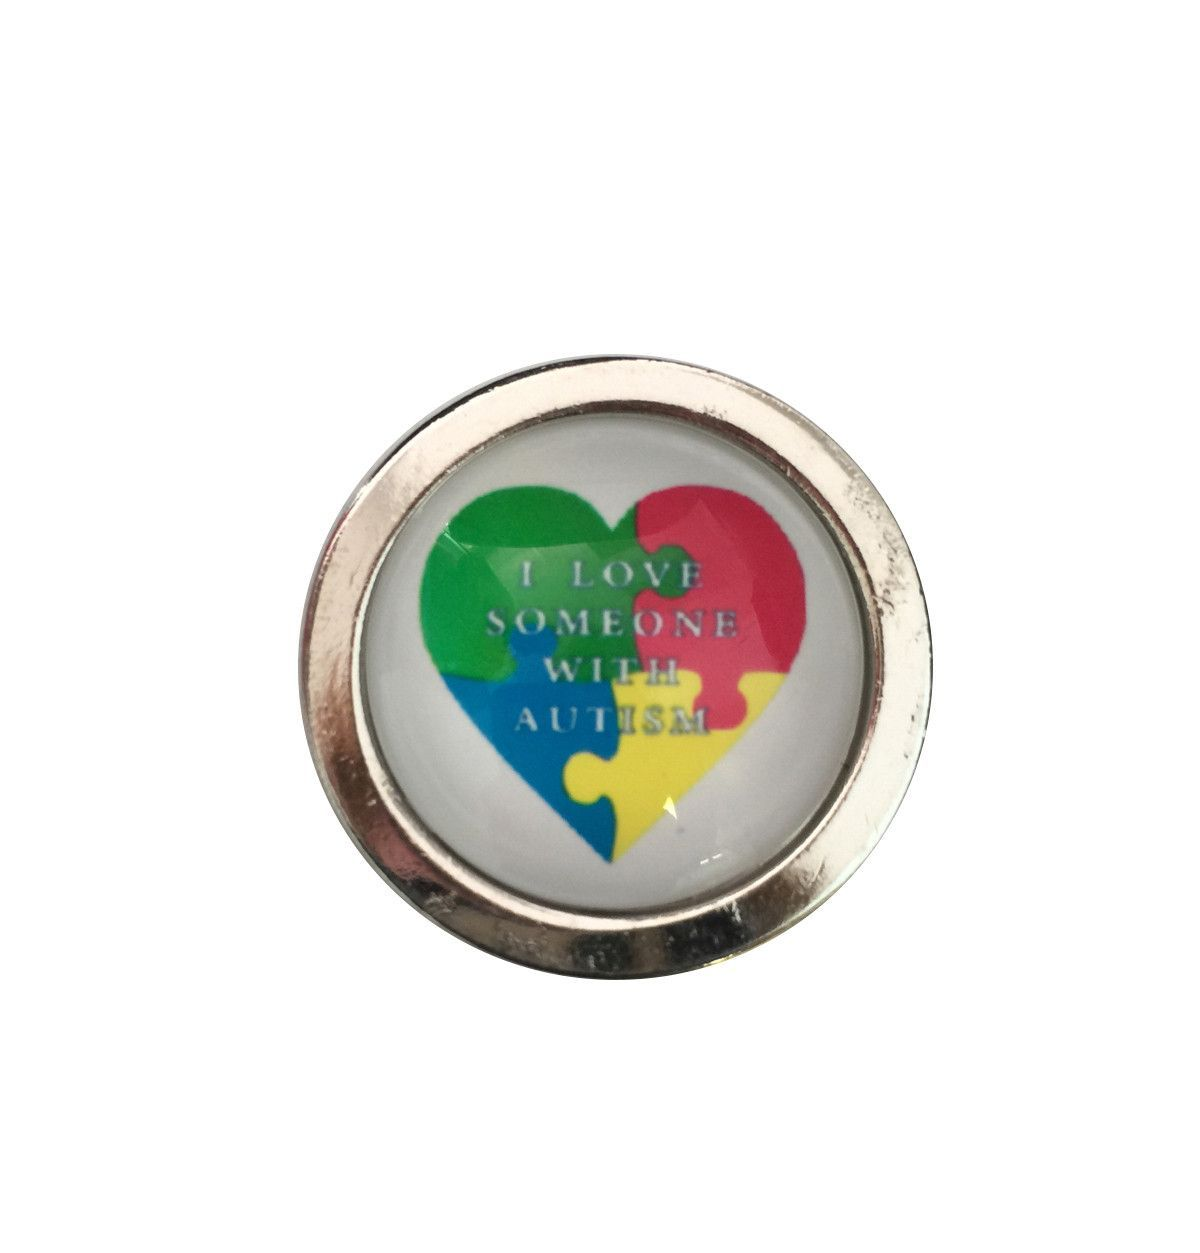 lockets prisma product type coins courage emozioni coin